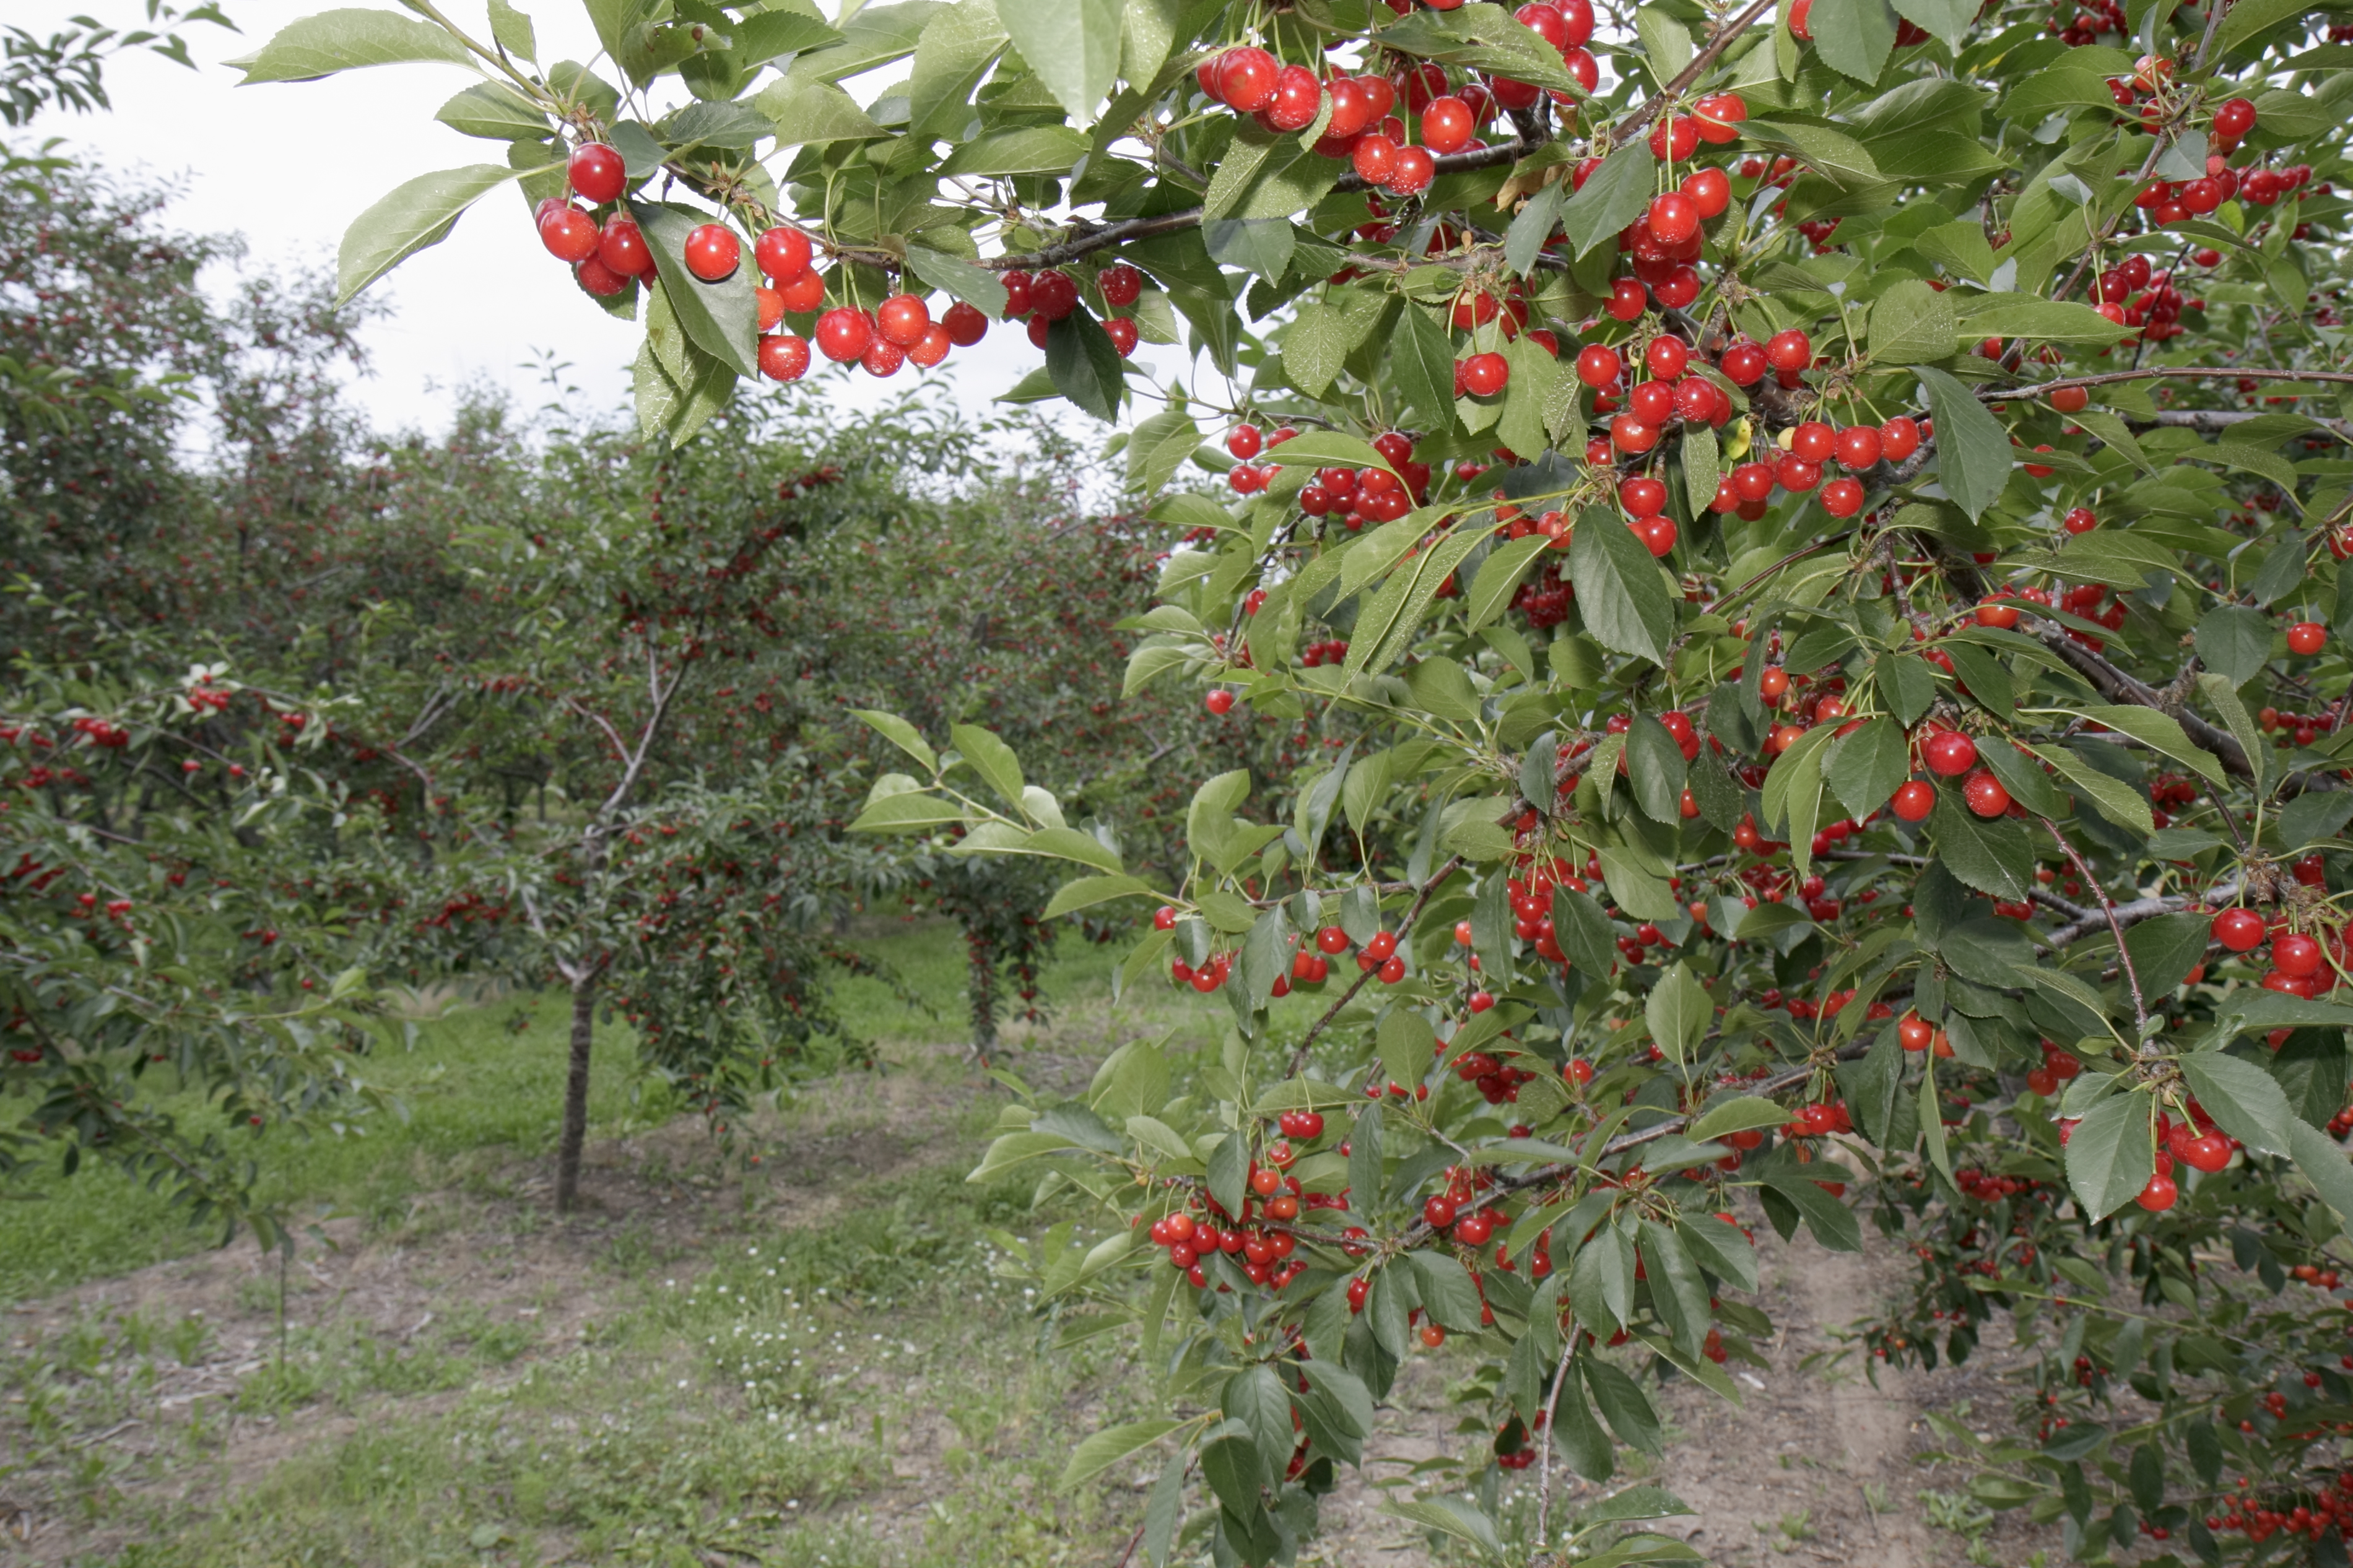 A cherry orchard in Old Mission Peninsula.